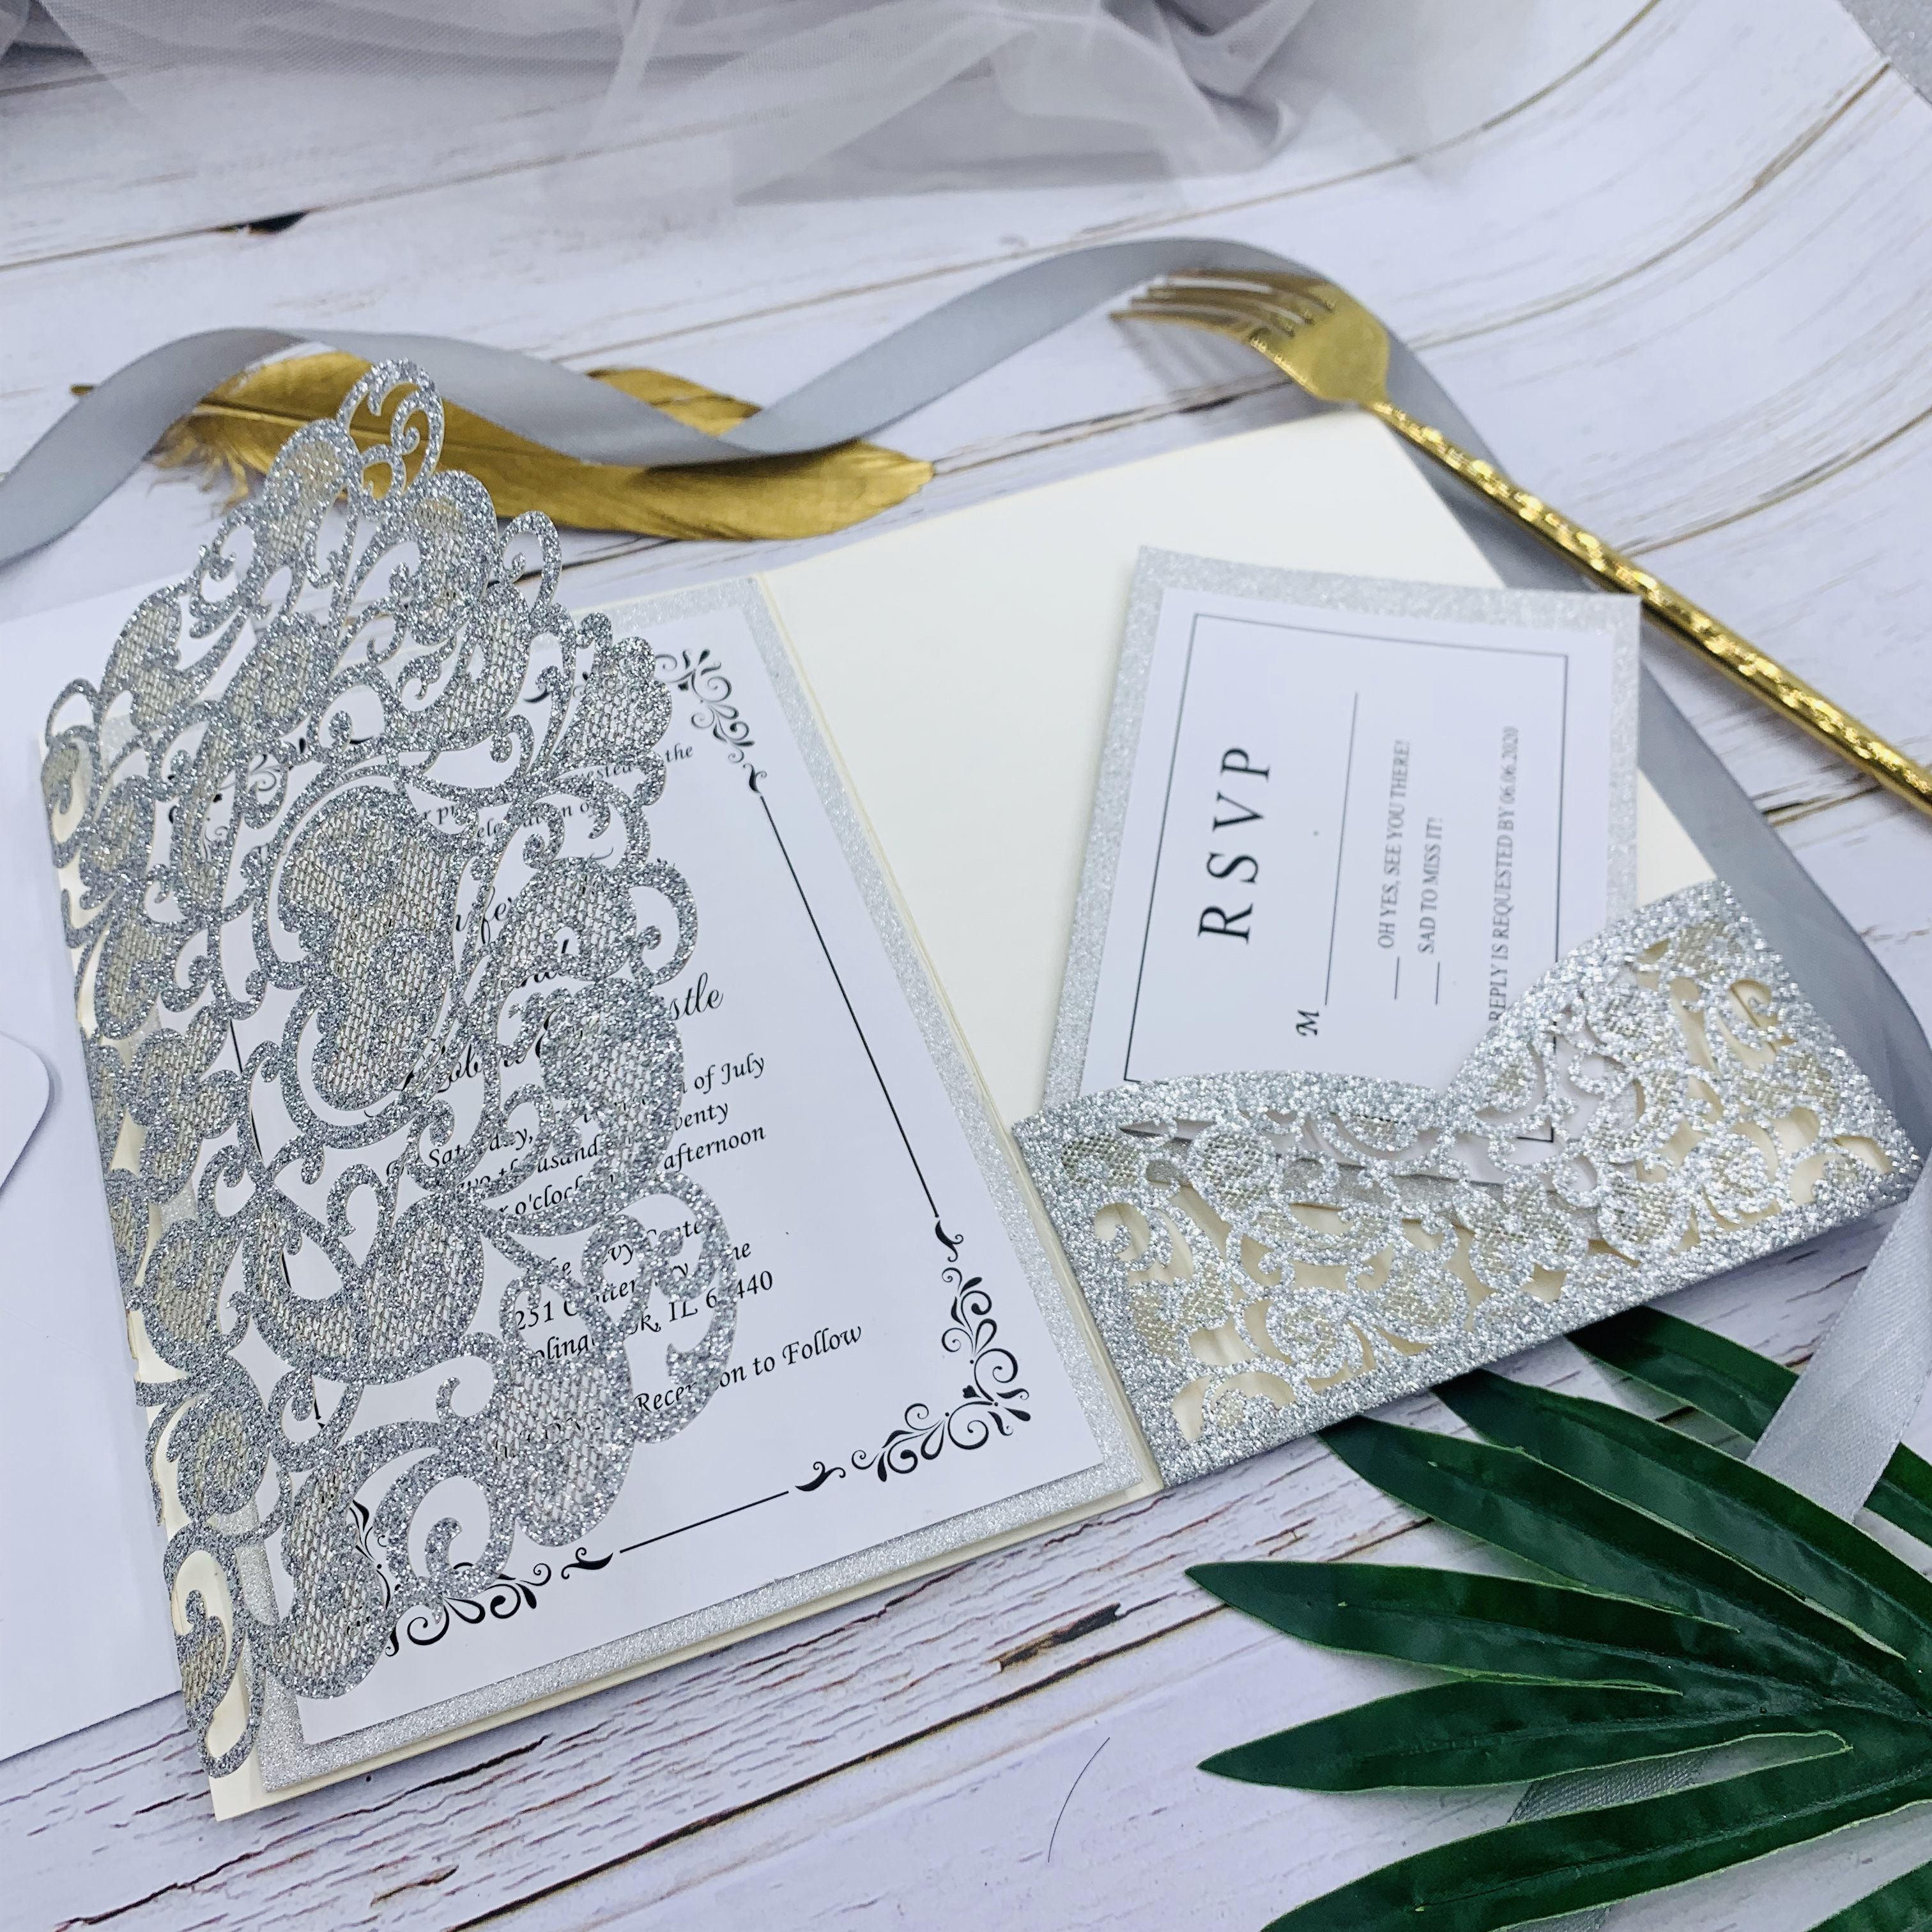 Yellow Invitations Online Shopping | Buy Yellow Invitations at DHgate.com